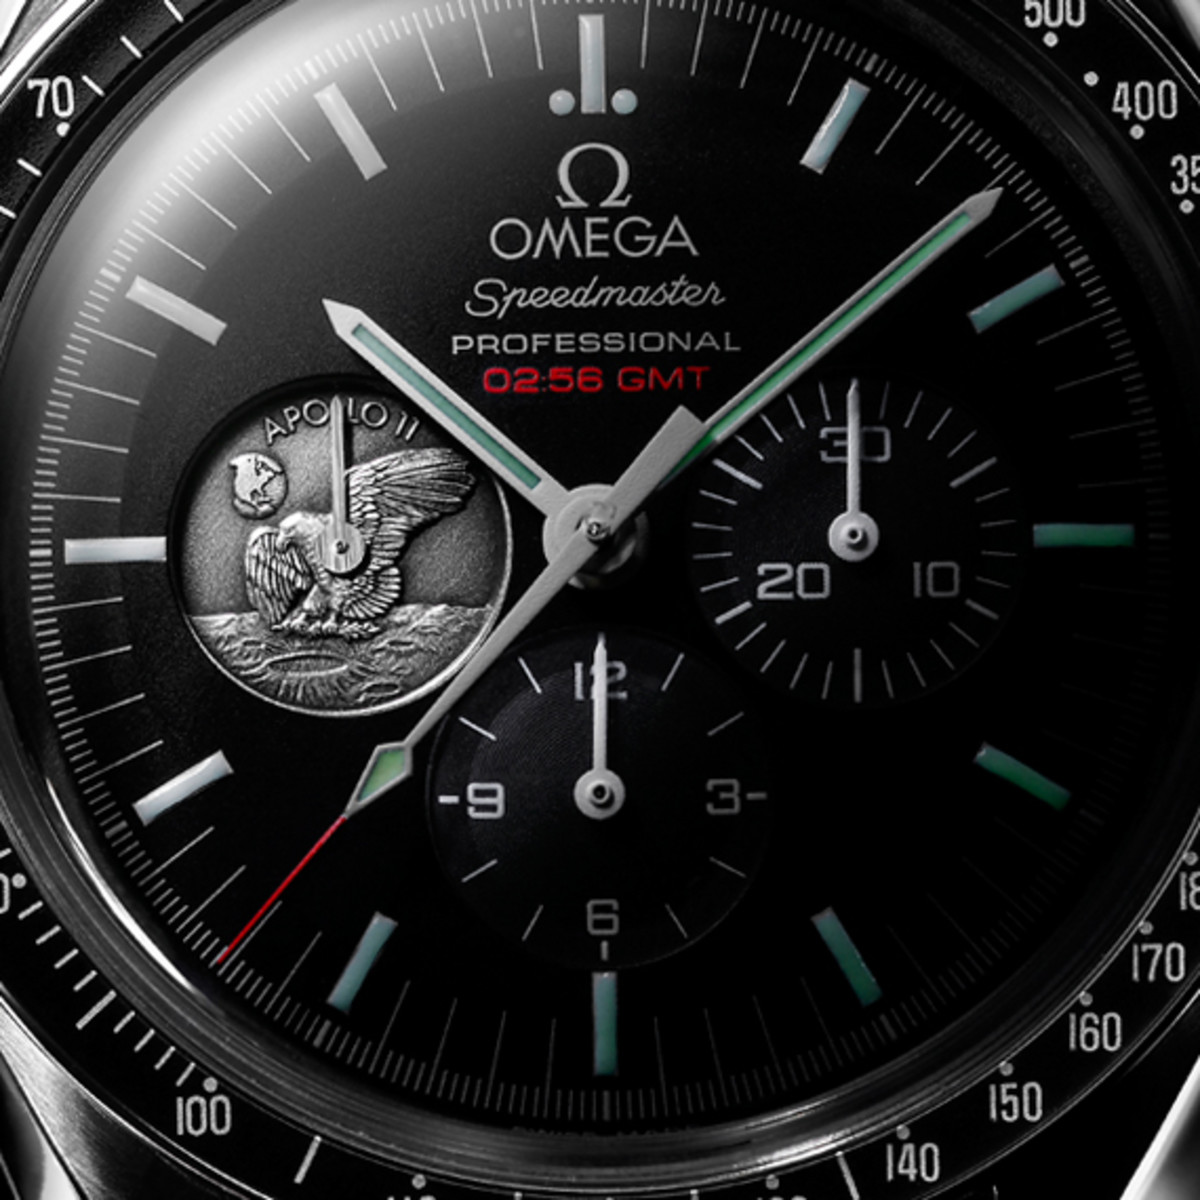 Omega Speedmaster Professional Moonwatch - Apollo 11 40th Anniversary Limited Edition